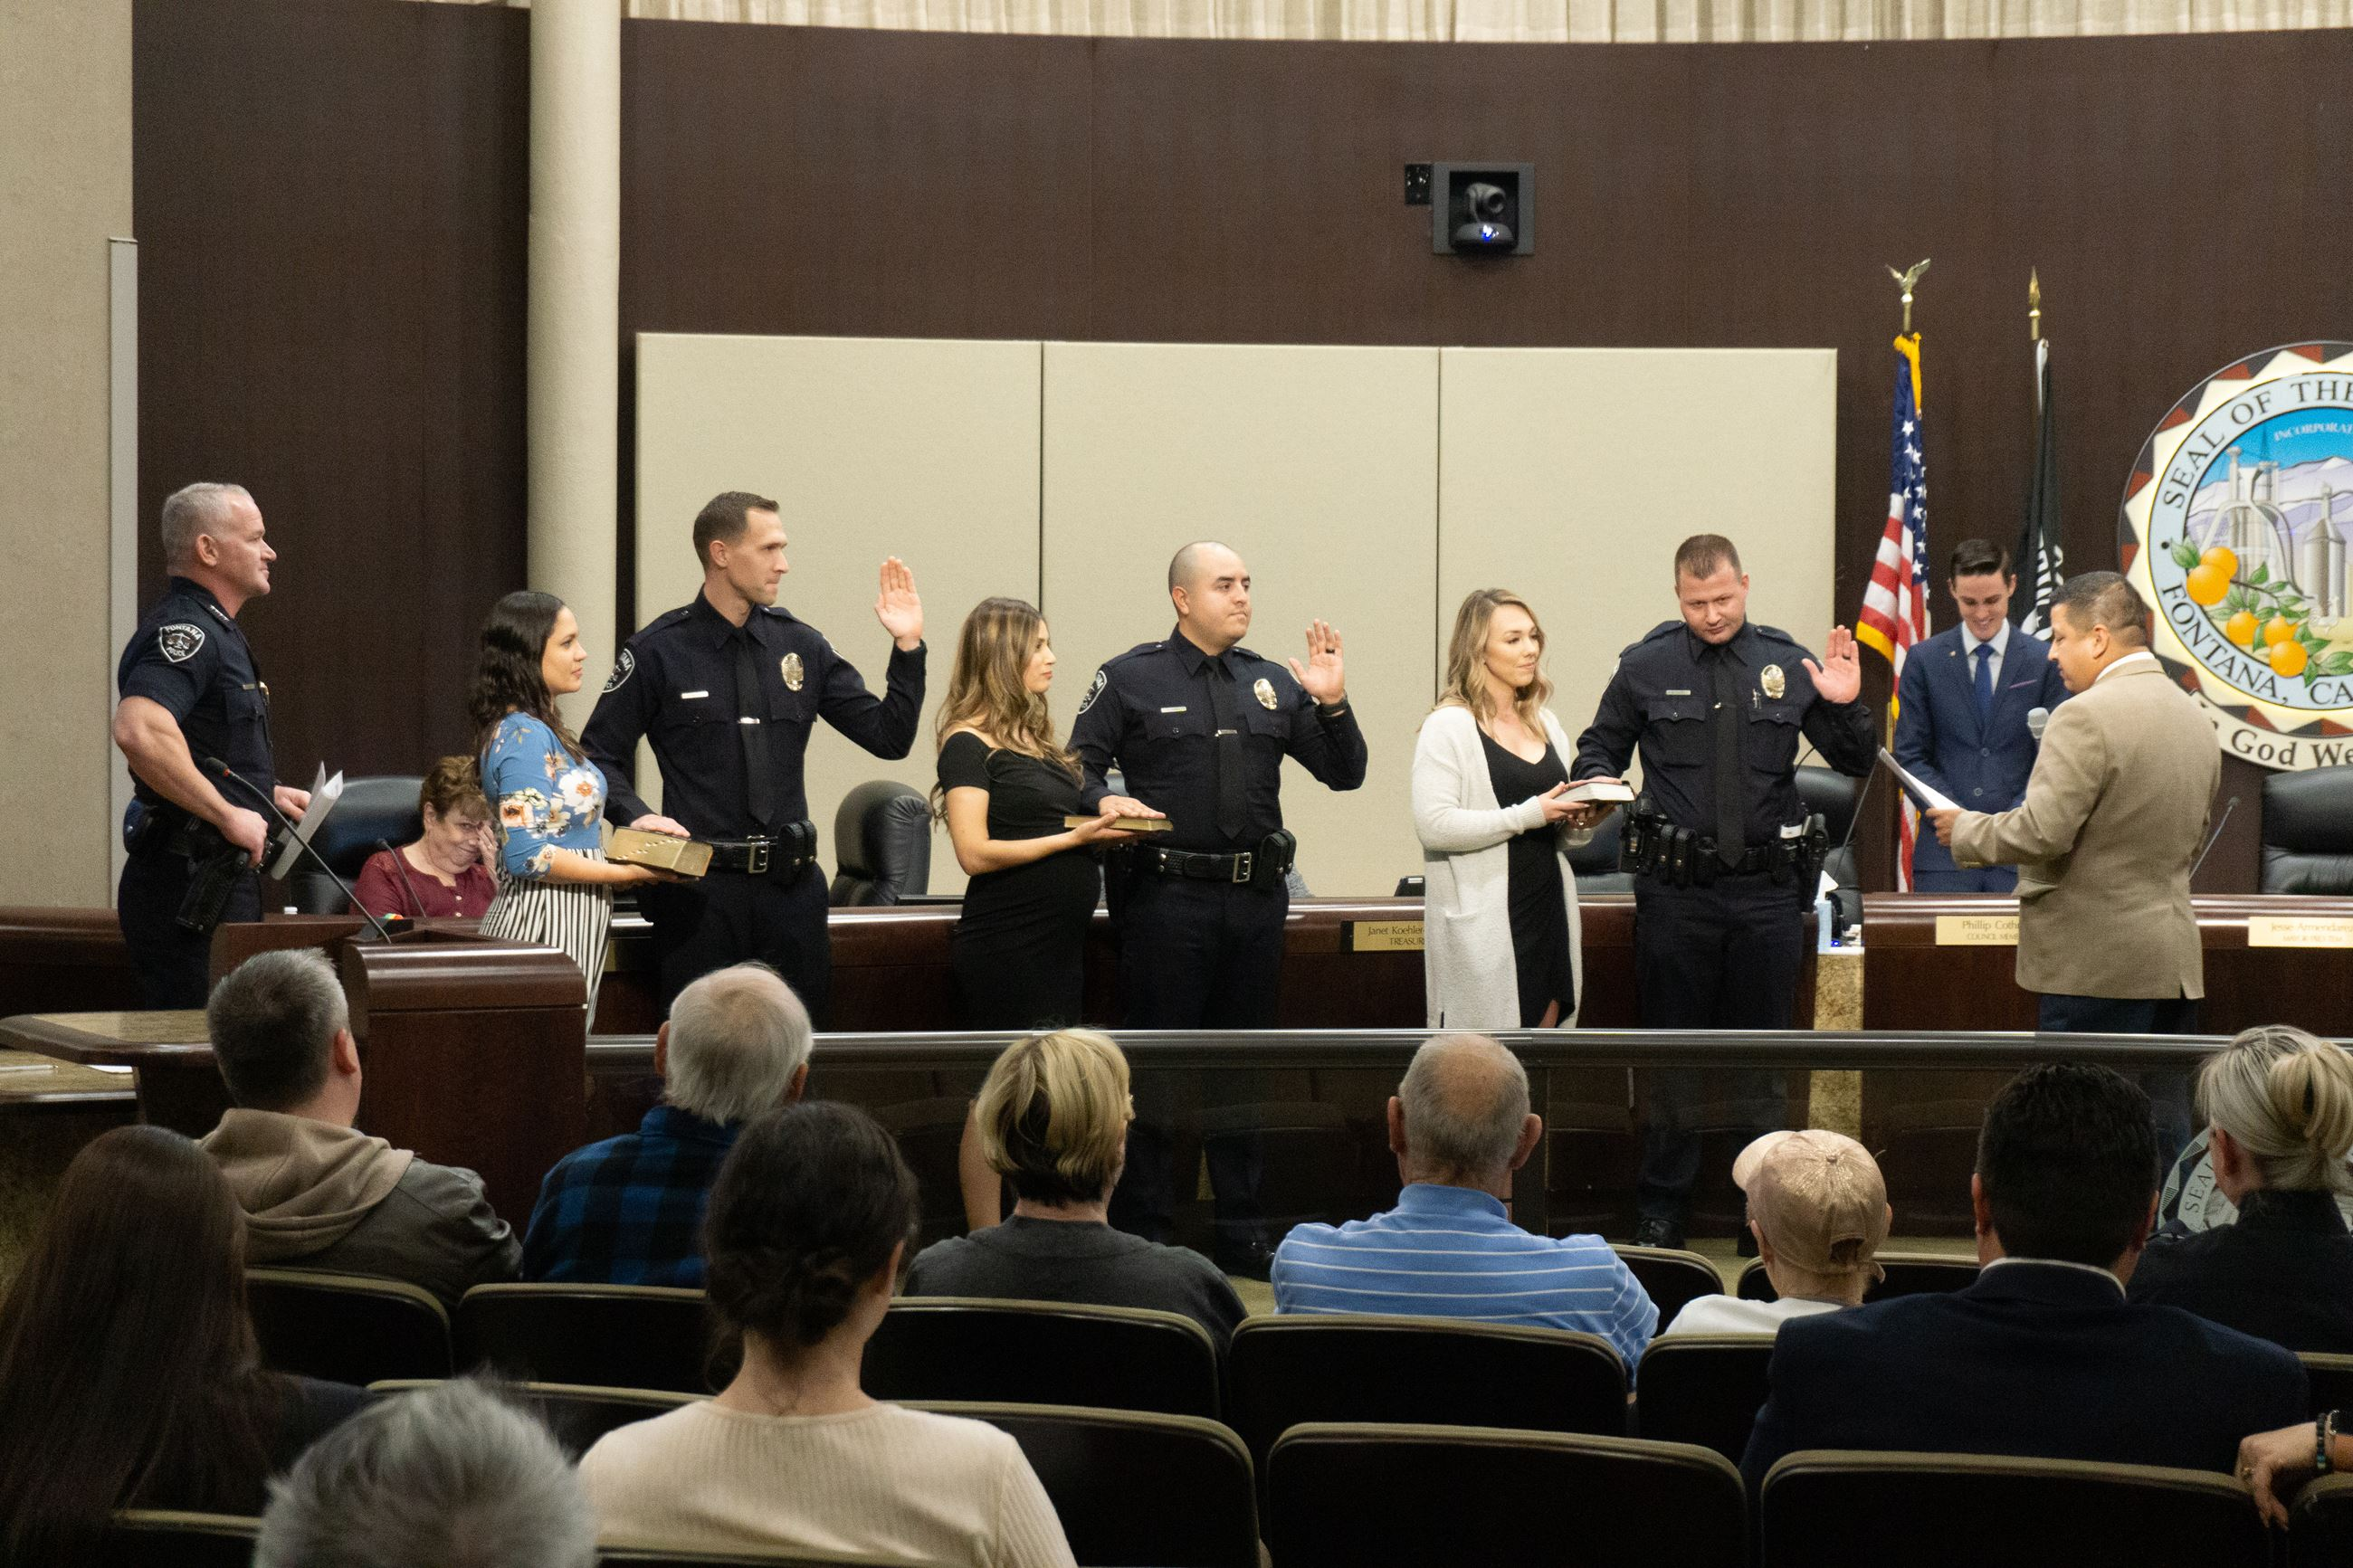 Police Department Swearing In Ceremony